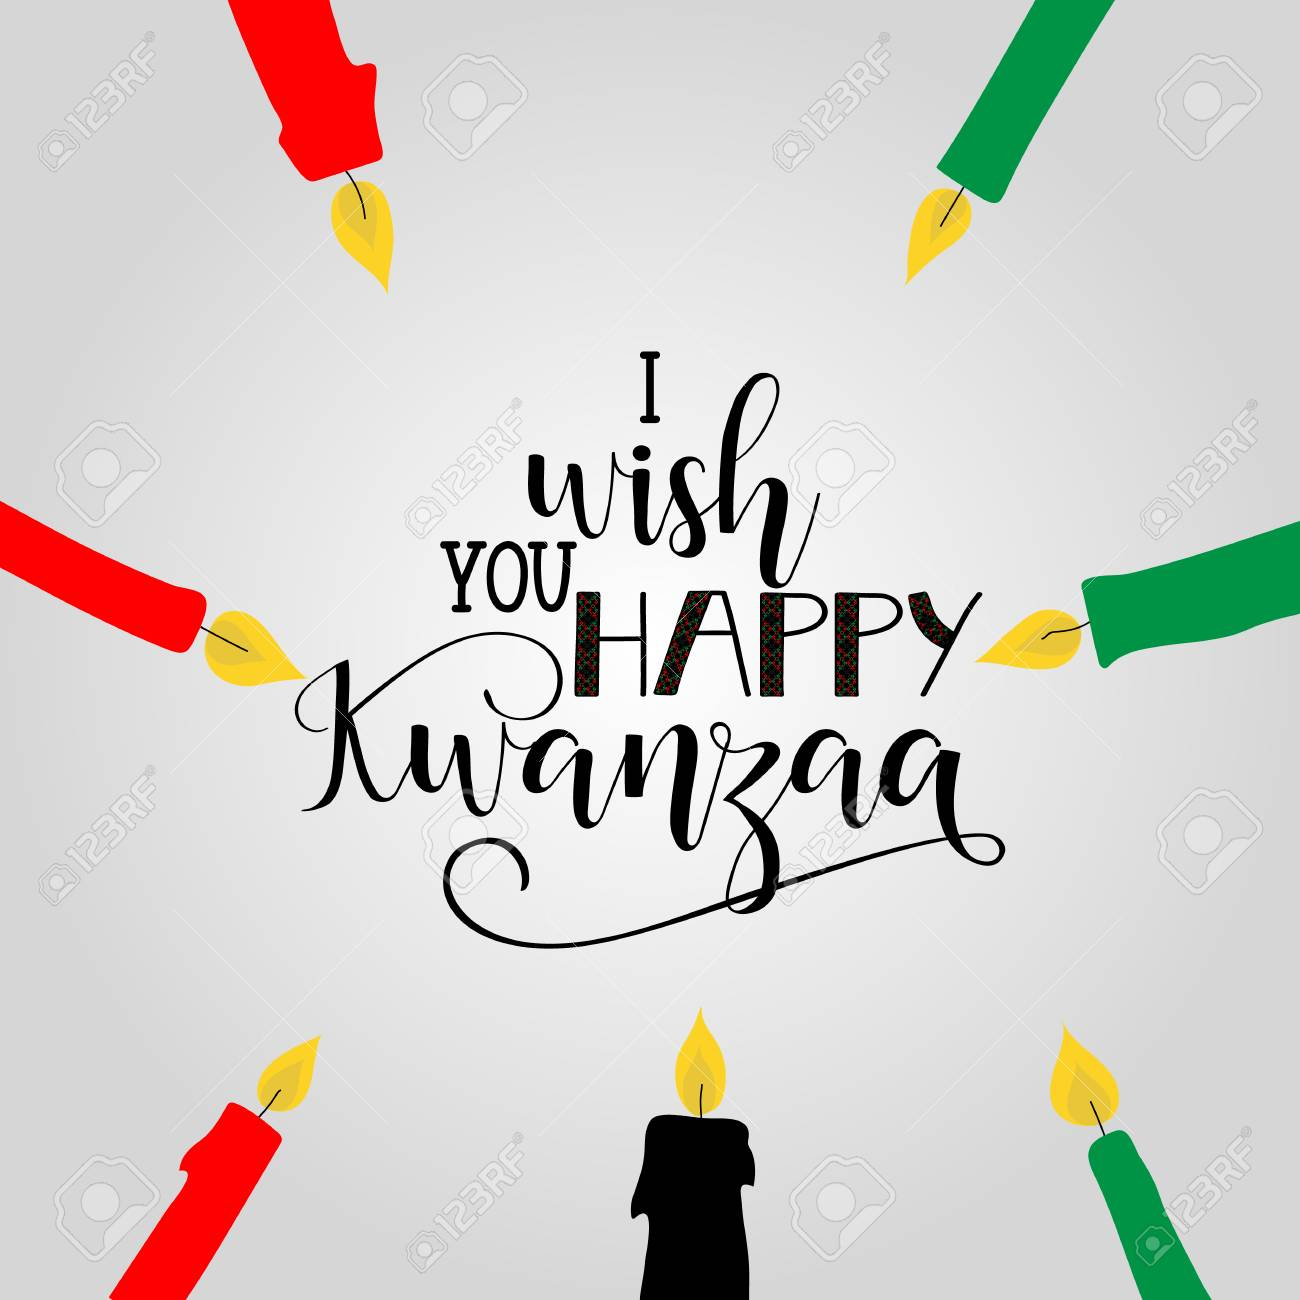 Happy kwanzaa decorative greeting card the celebration honors happy kwanzaa decorative greeting card the celebration honors african heritage in african american culture kristyandbryce Images